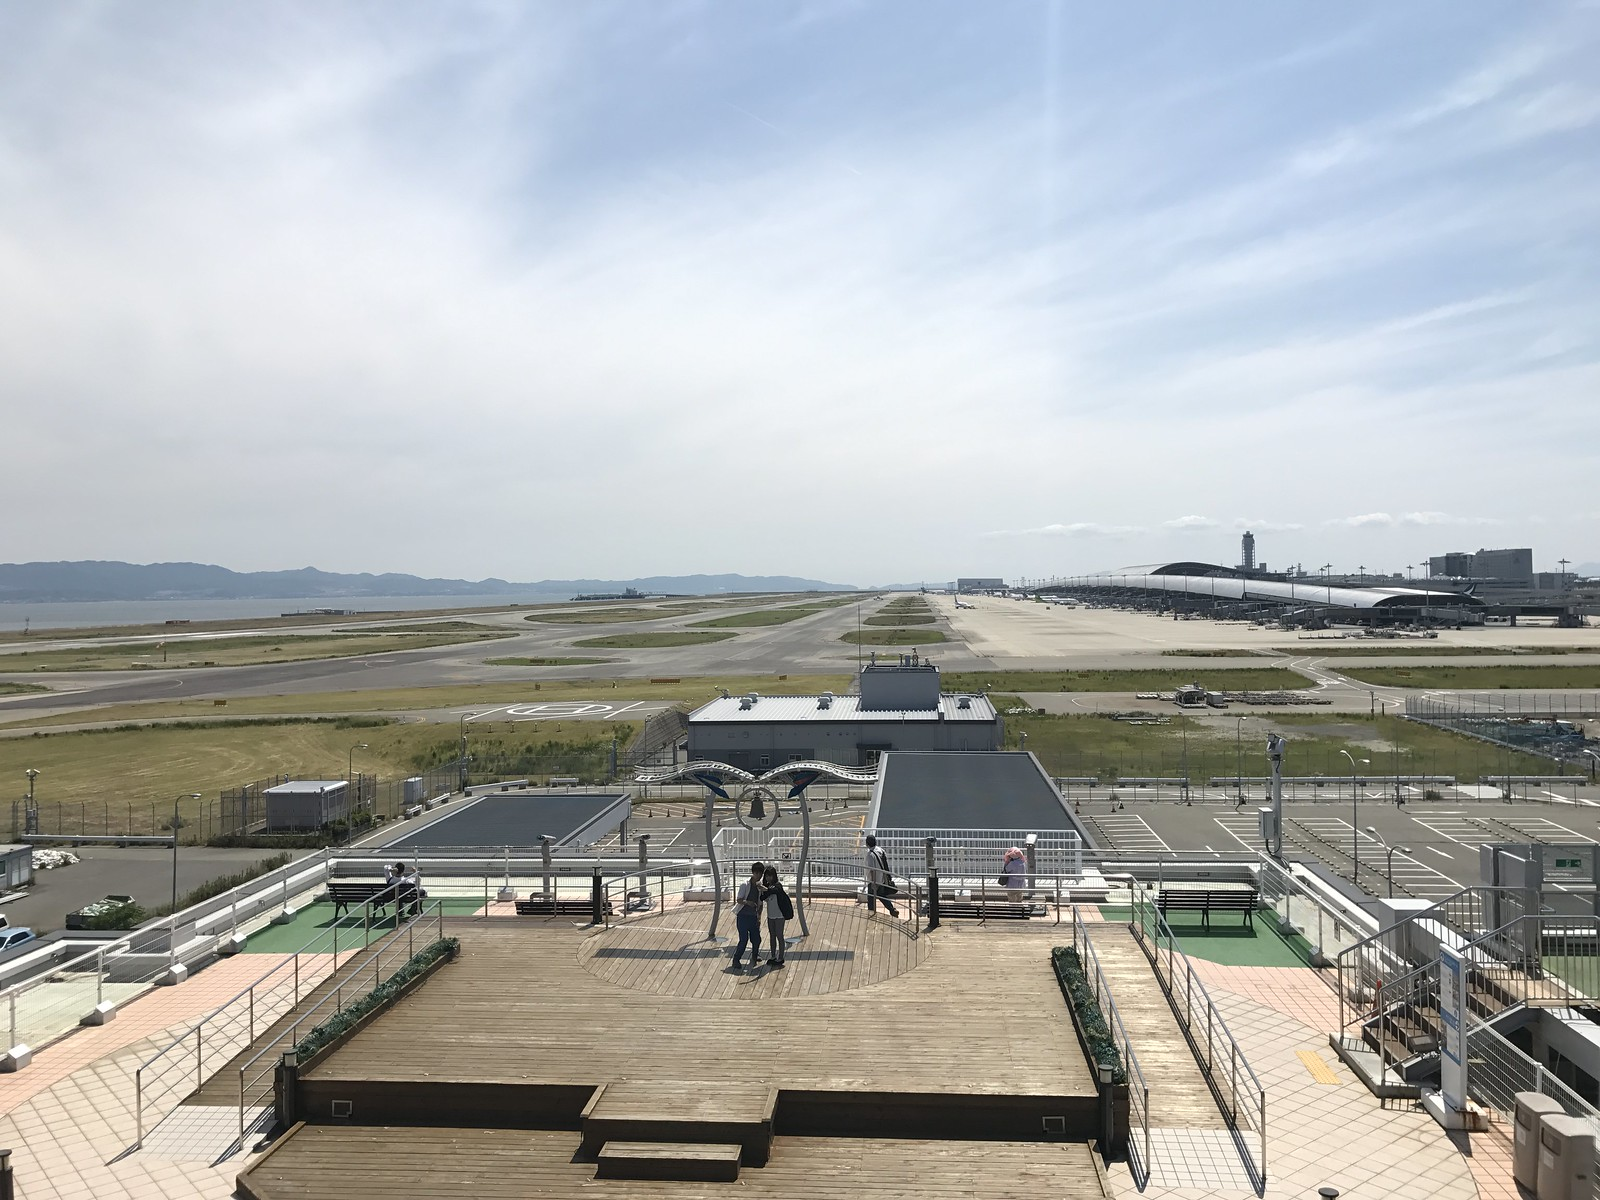 KIX Kansai Airport